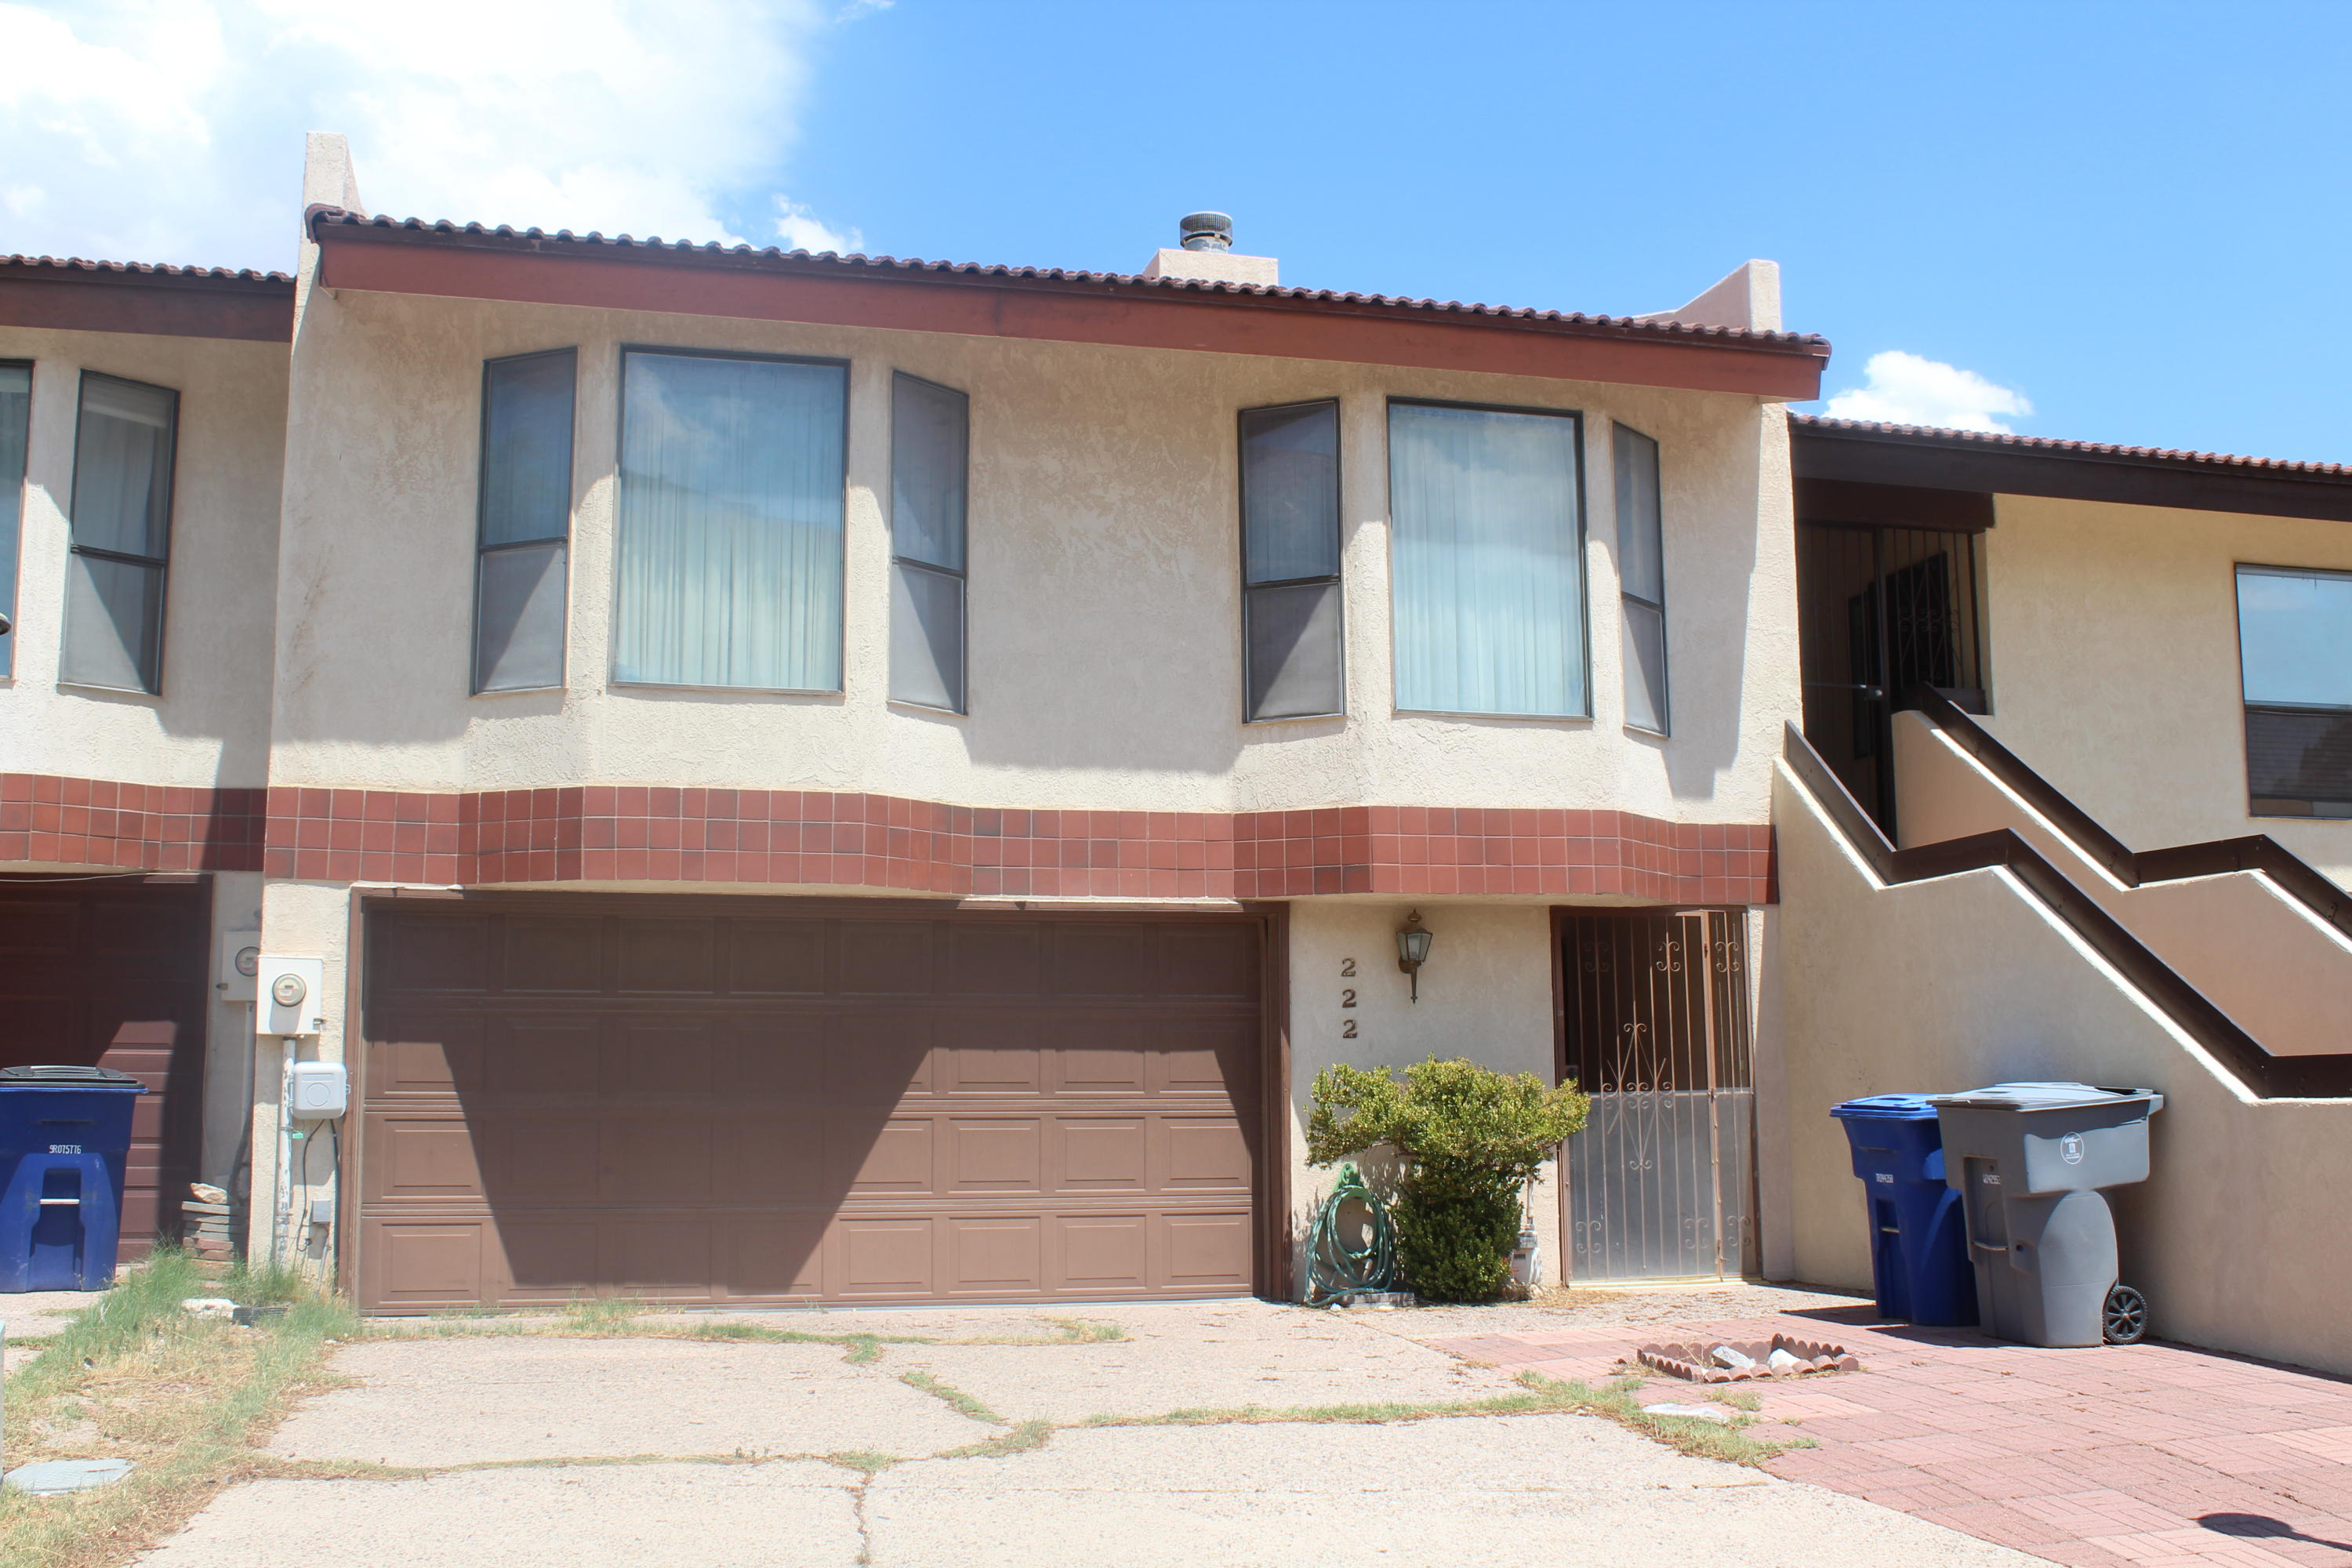 222 canyon terrace Drive, El Paso, Texas 79902, 3 Bedrooms Bedrooms, ,2 BathroomsBathrooms,Residential Rental,For Rent,canyon terrace,831874